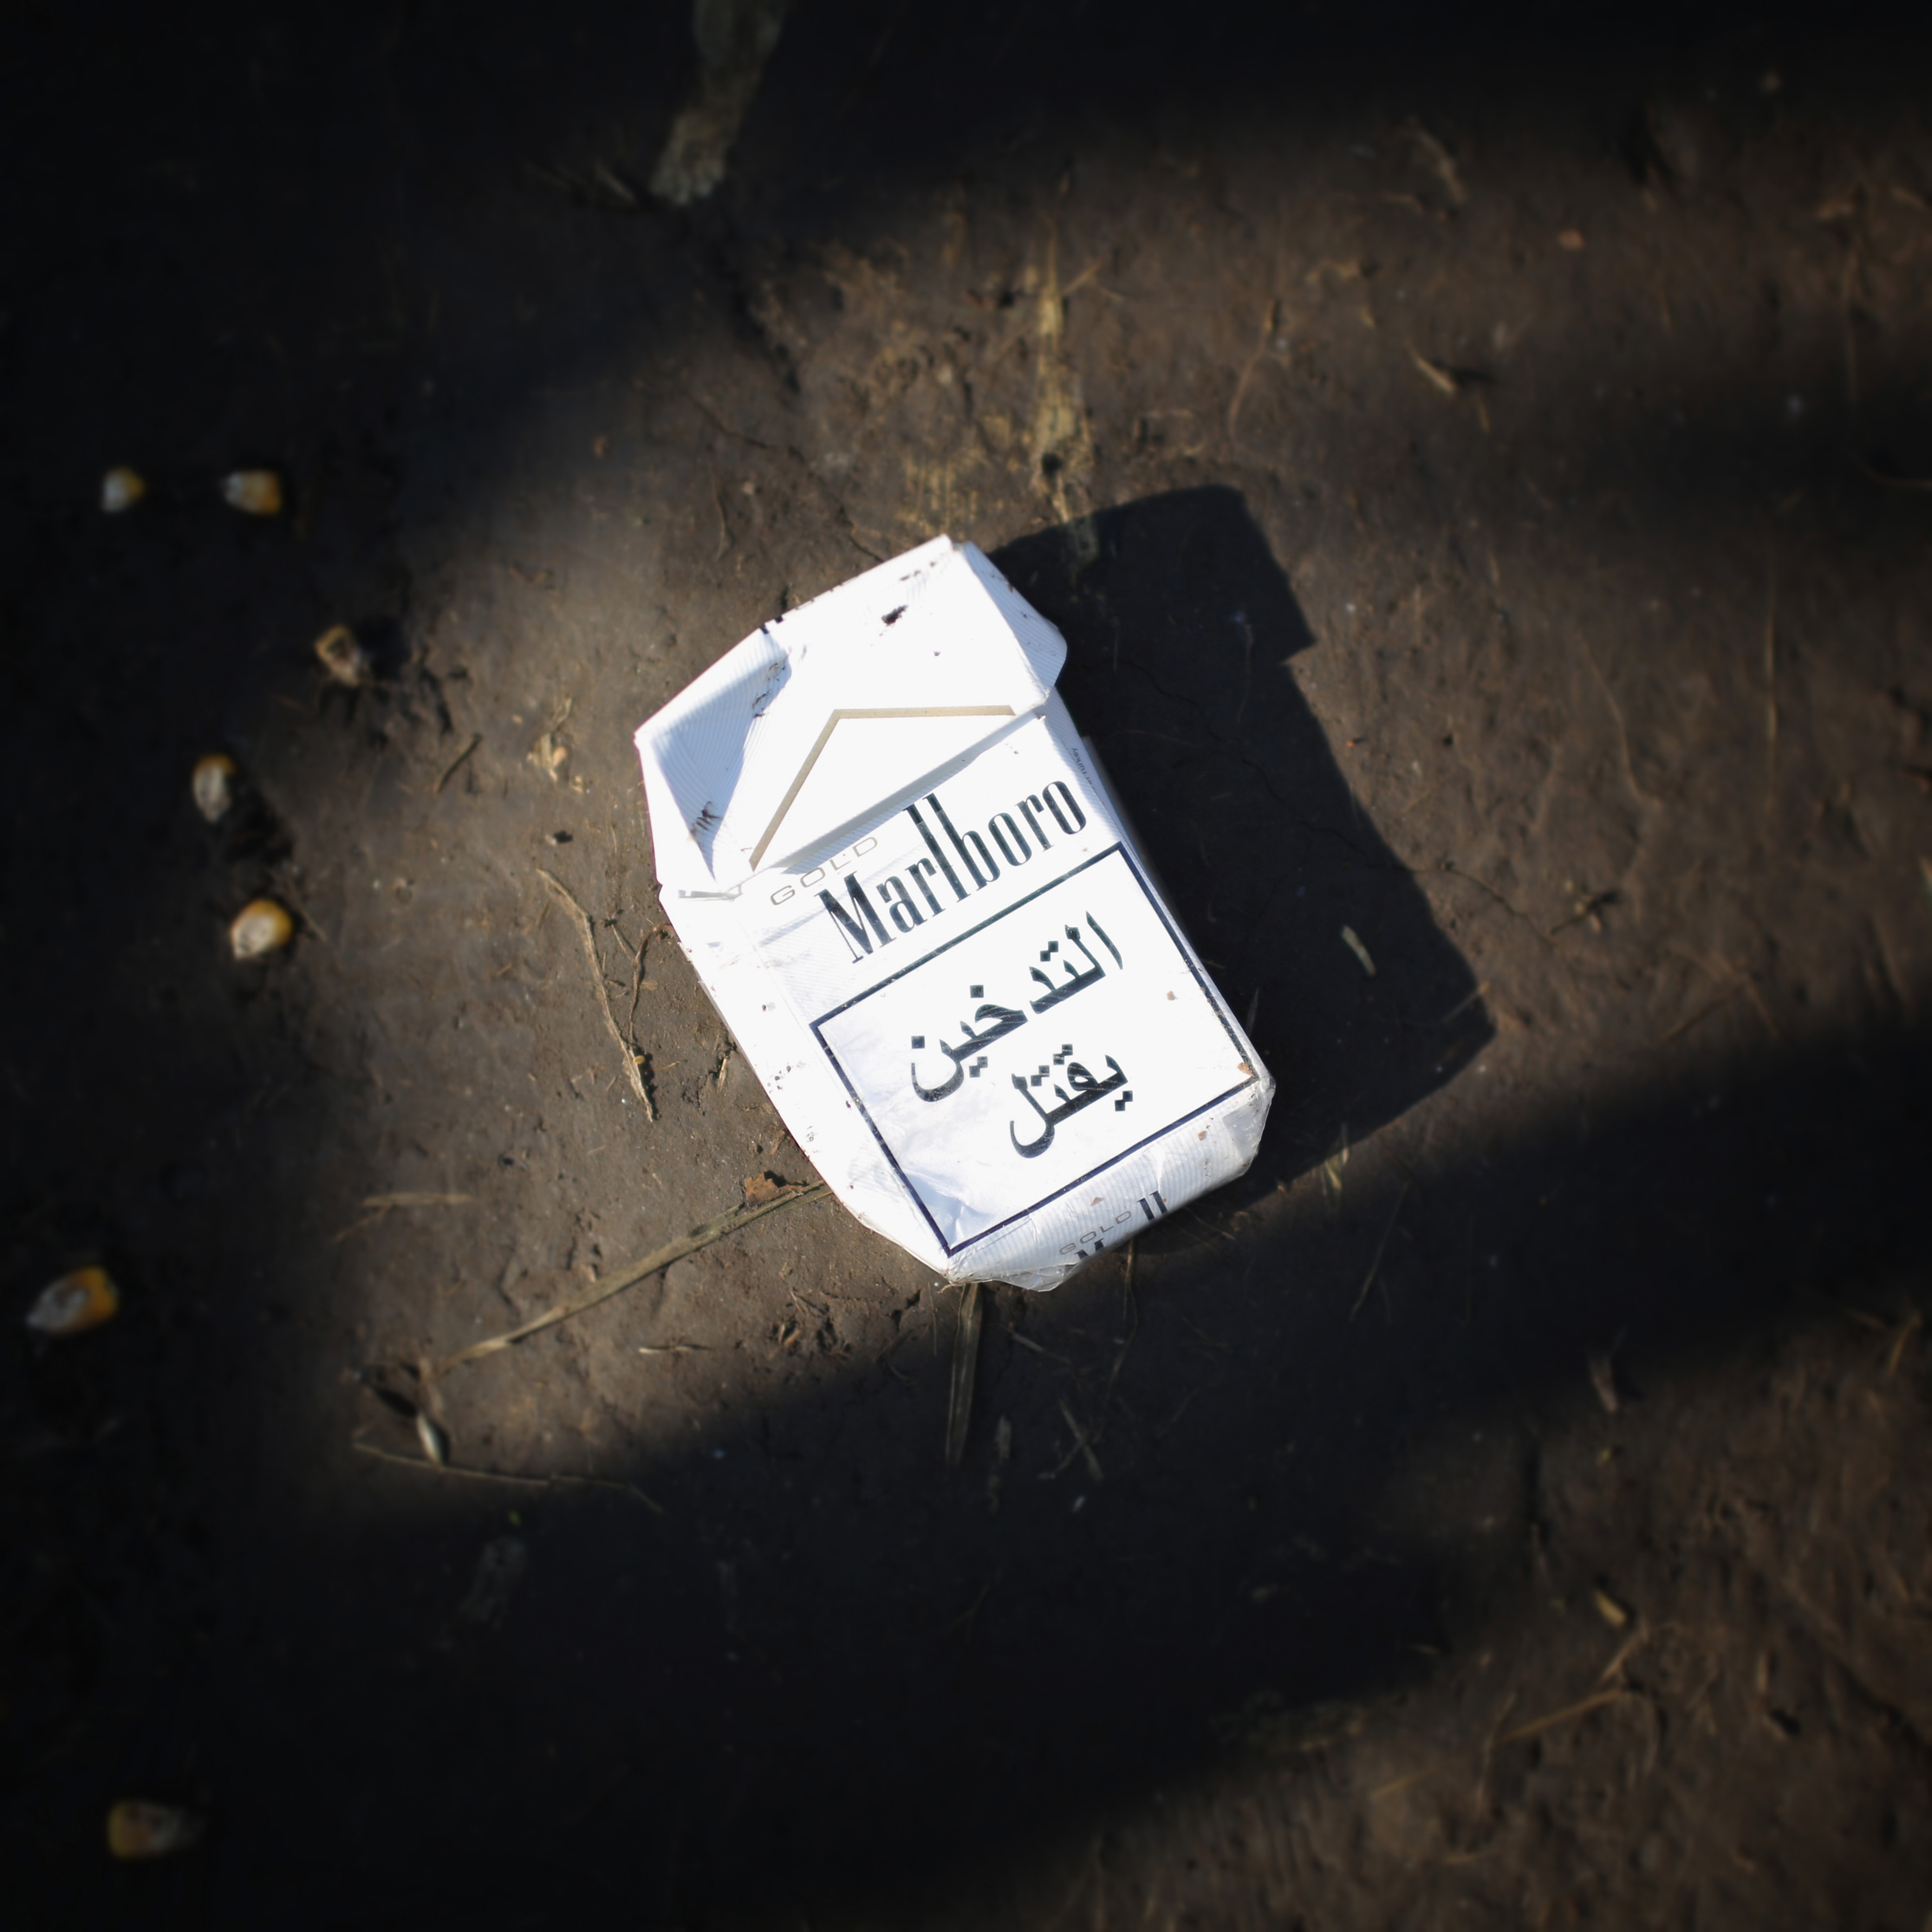 ROSZKE, HUNGARY - SEPTEMBER 14: (EDITOTS NOTE: This image was processed with digital filters) An empty packet of foreign cigarettes lays on the ground as migrants discard items no longer wanted or needed when they cross the Hungarian border on September 14, 2015 in Roszke, Hungary. Since the beginning of 2015 the number of migrants using the so-called 'Balkans route' has exploded with migrants arriving in Greece from Turkey and then travelling on through Macedonia and Serbia before entering the EU via Hungary. As the migrants converge on the small gap in the border fence of the Hungarian-Serbian border they discard items that they are too tired to carry or no longer need. Many shoes litter the tracks as they replace them with shoes donated by the public. Forms of identity are also ripped up and discarded along with tents, sim cards and blankets. (Photo by Christopher Furlong/Getty Images)